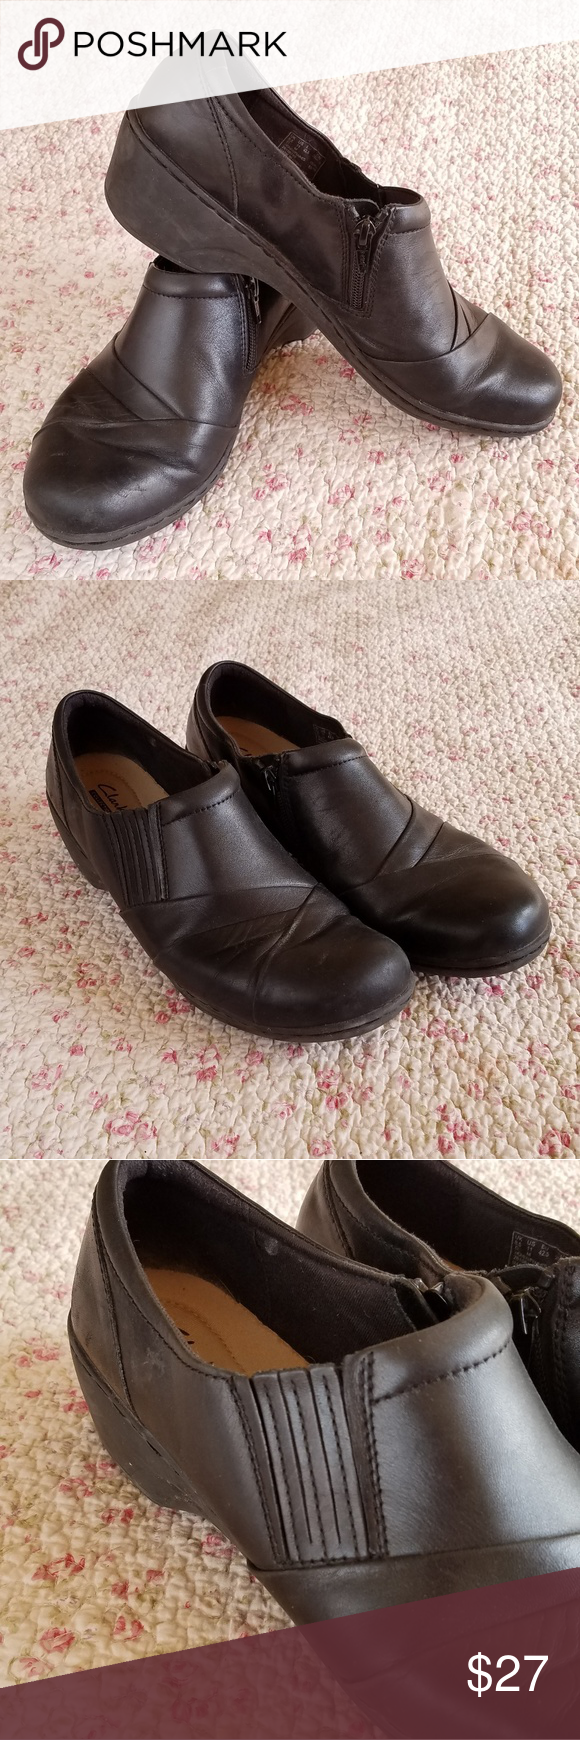 6a03dfcfcf6 Clarks Channing Essa Black Slip On Loafer Size 11 Adorable Clarks black  loafer shoes with side